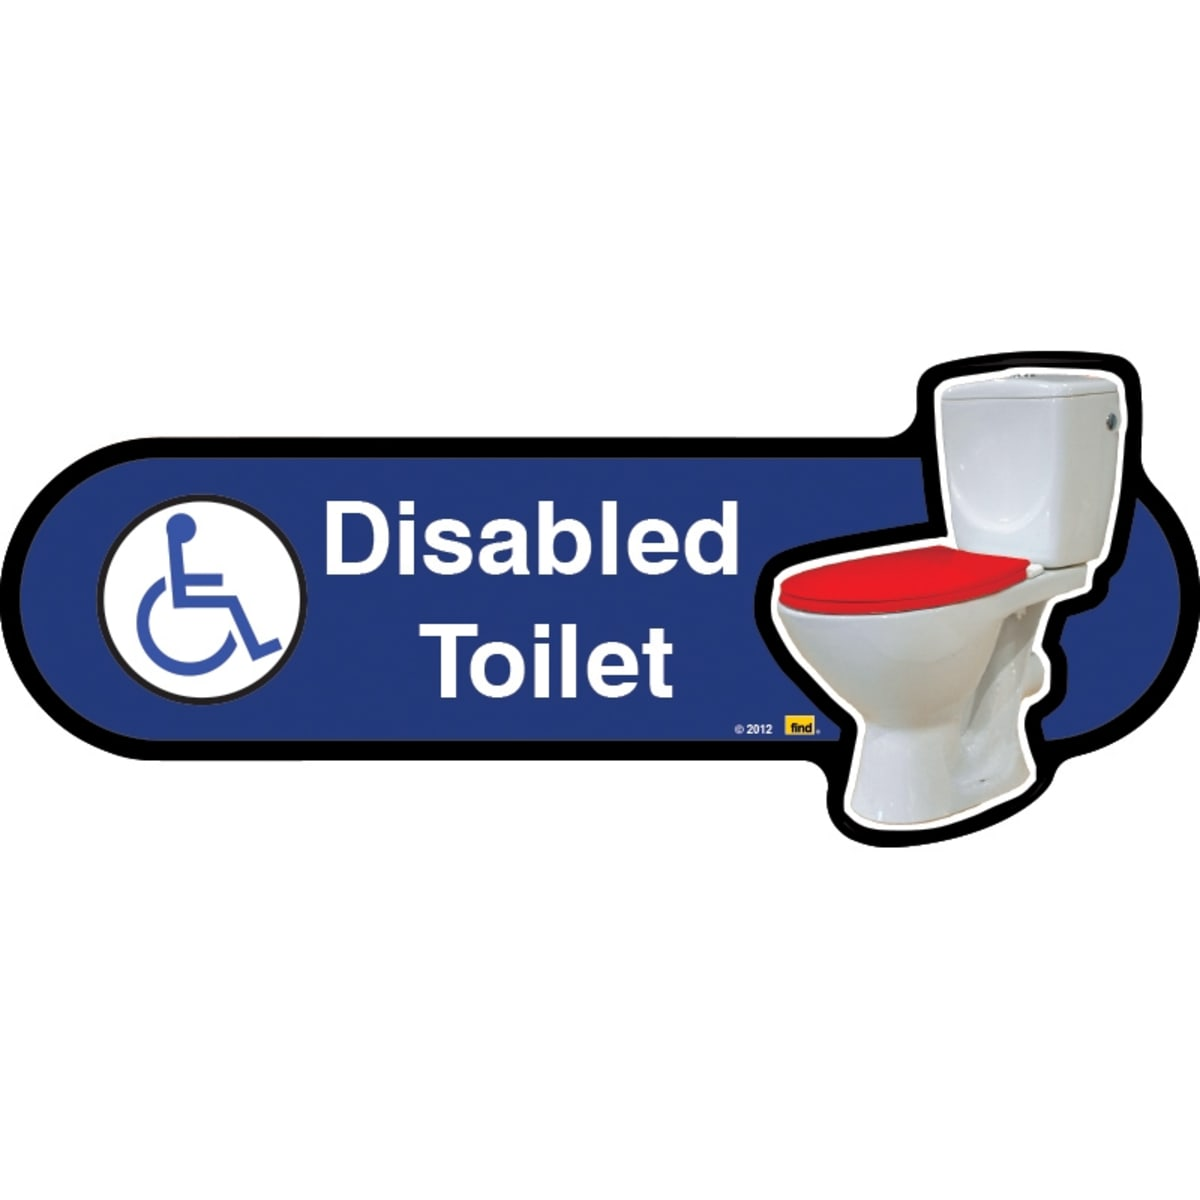 Disabled toilet sign with symbol  - Dementia Signage